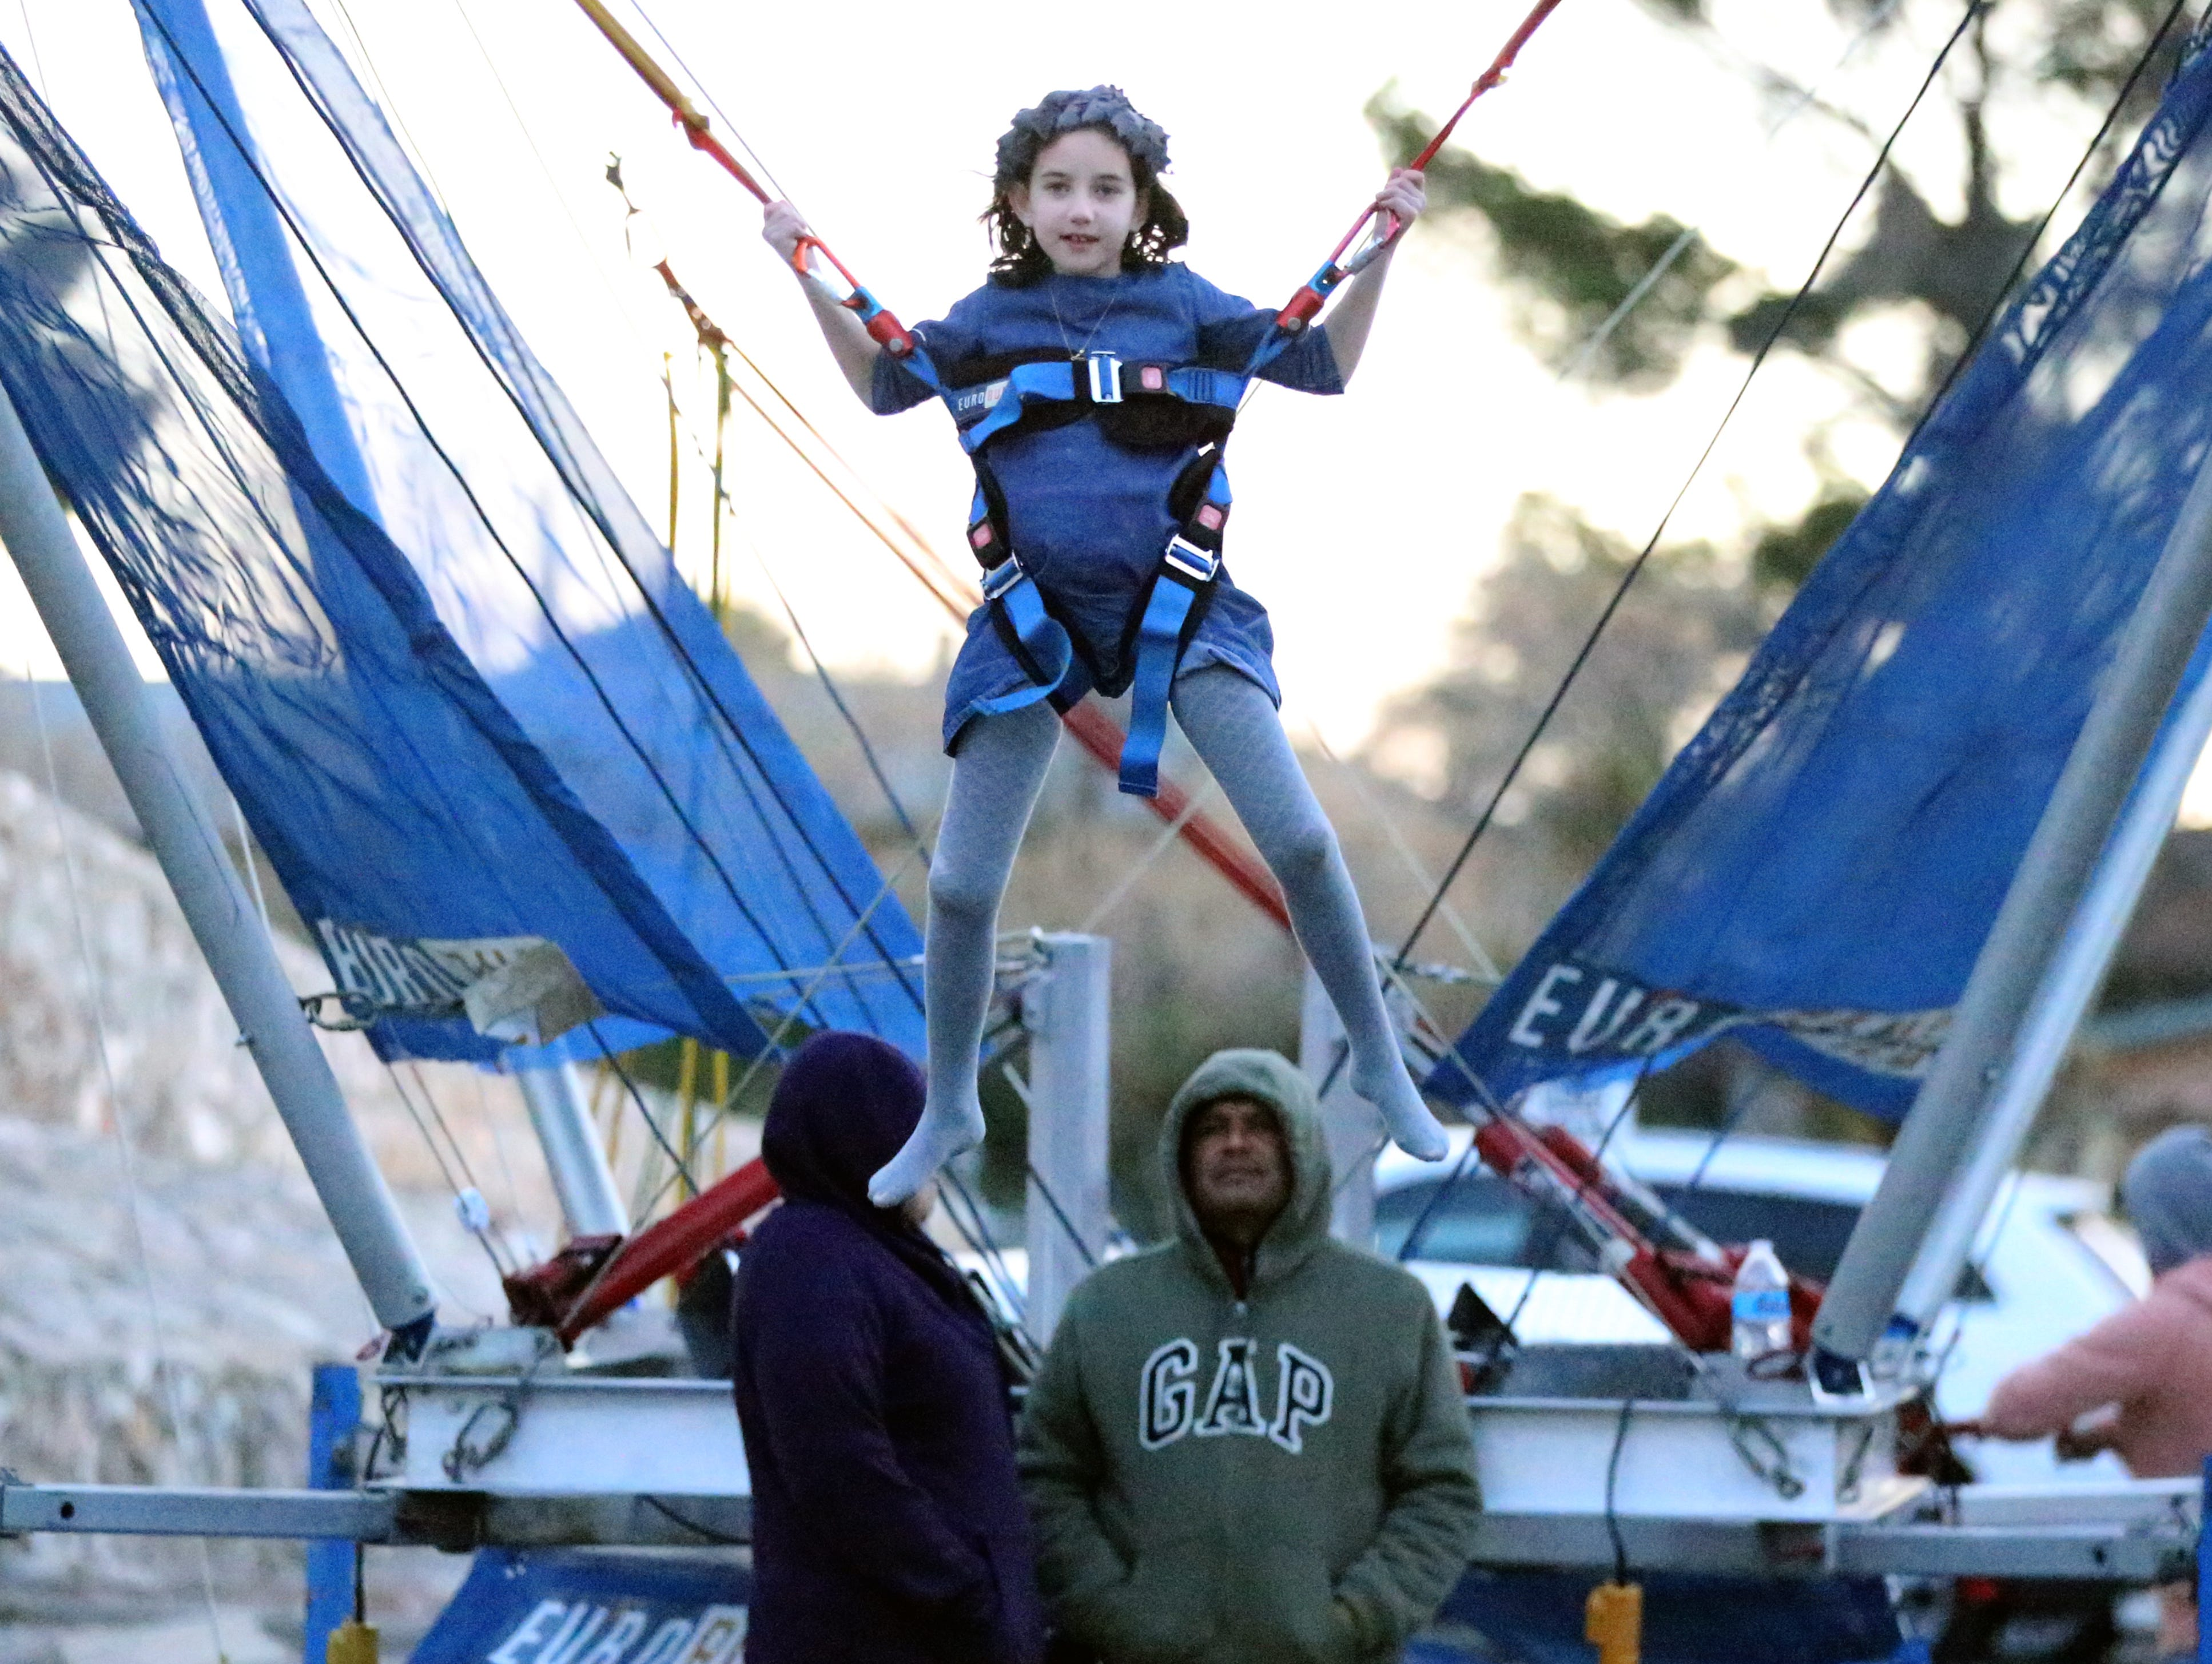 Musia Greenberg, 7, jumps while on a harness on an outdoor attraction at the Chabad Lubavitch Chanukah Playground Sunday.